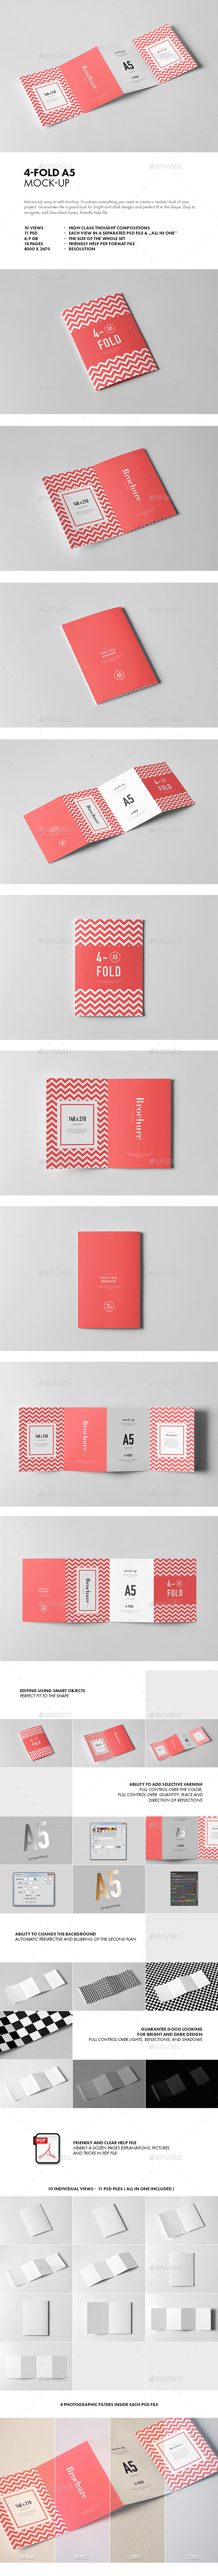 GraphicRiver Four-Fold A5 Brochure Mock-up 21127458